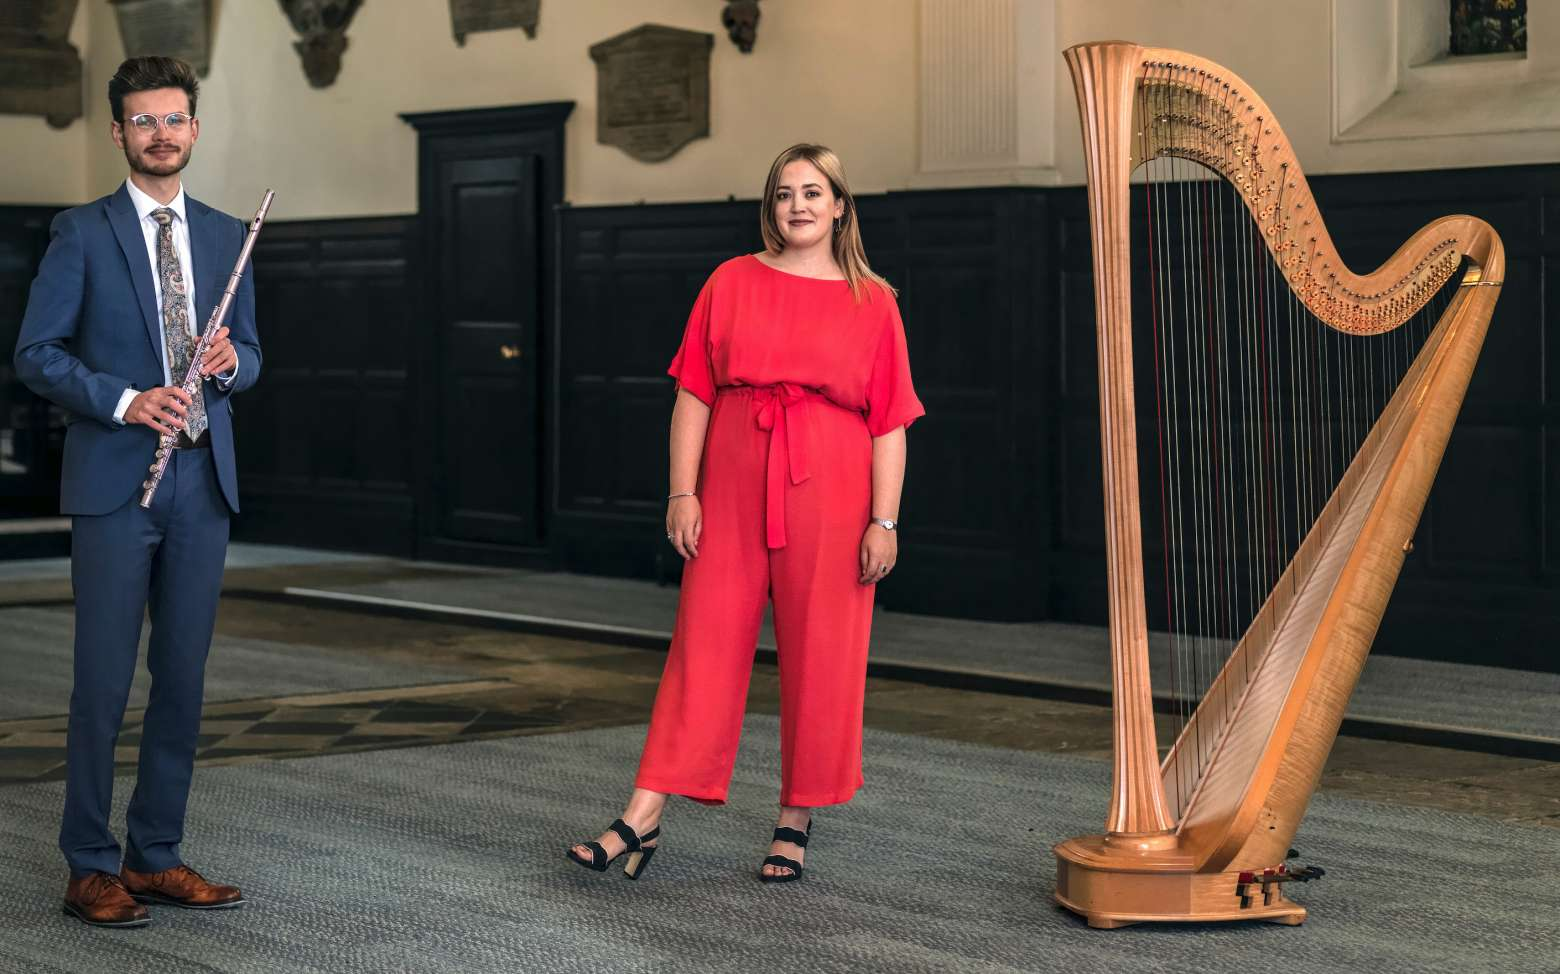 Dahlia Flute Harp Duo   London Flute And Harp Duo For Hire